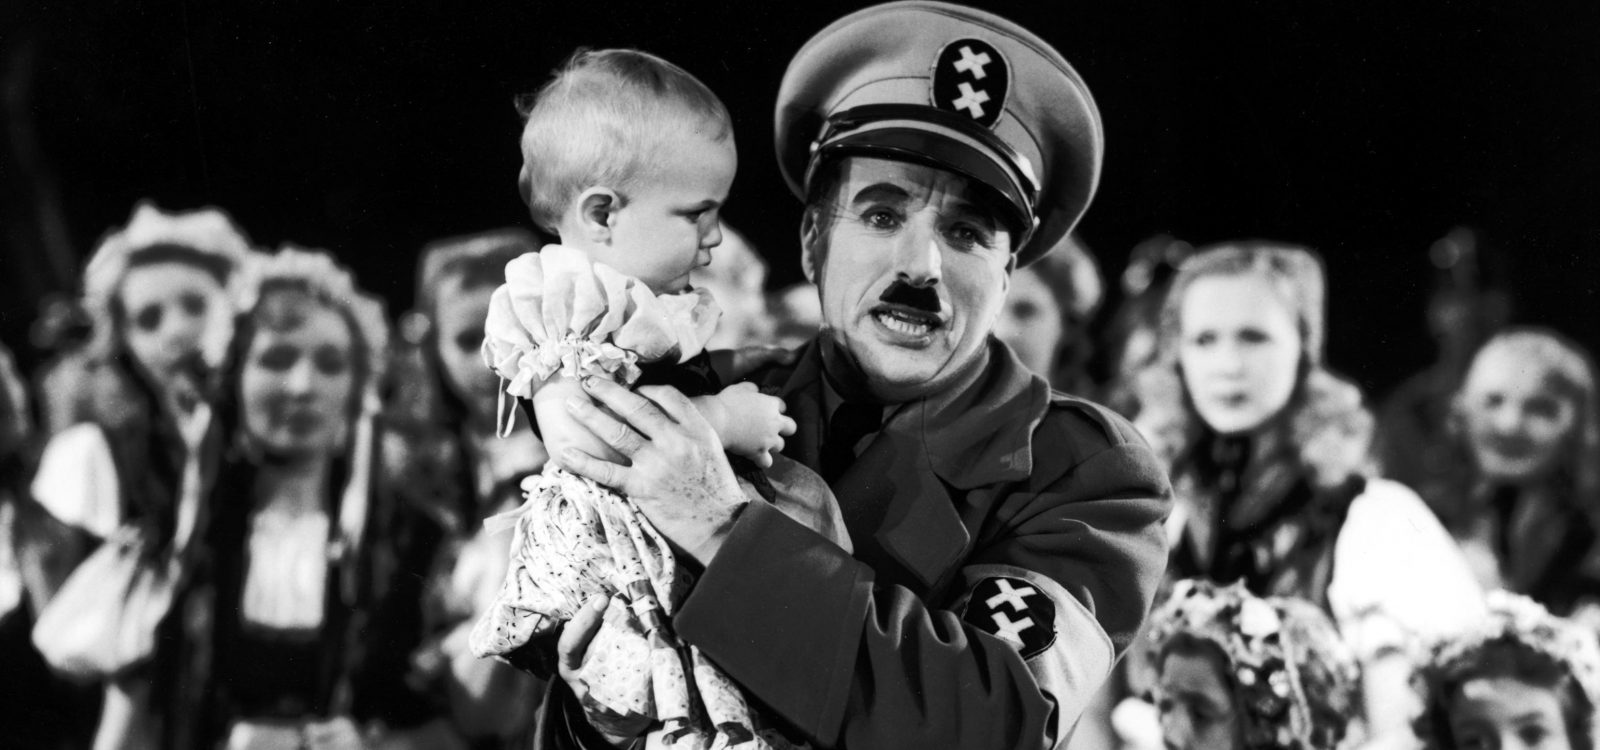 The Great Dictator st 1 jpg sd high Charlie Chaplin Copyright Bubbles Inc S A THE GREAT DICTATOR Copyright Roy Export S A S 615c1b8bb6614